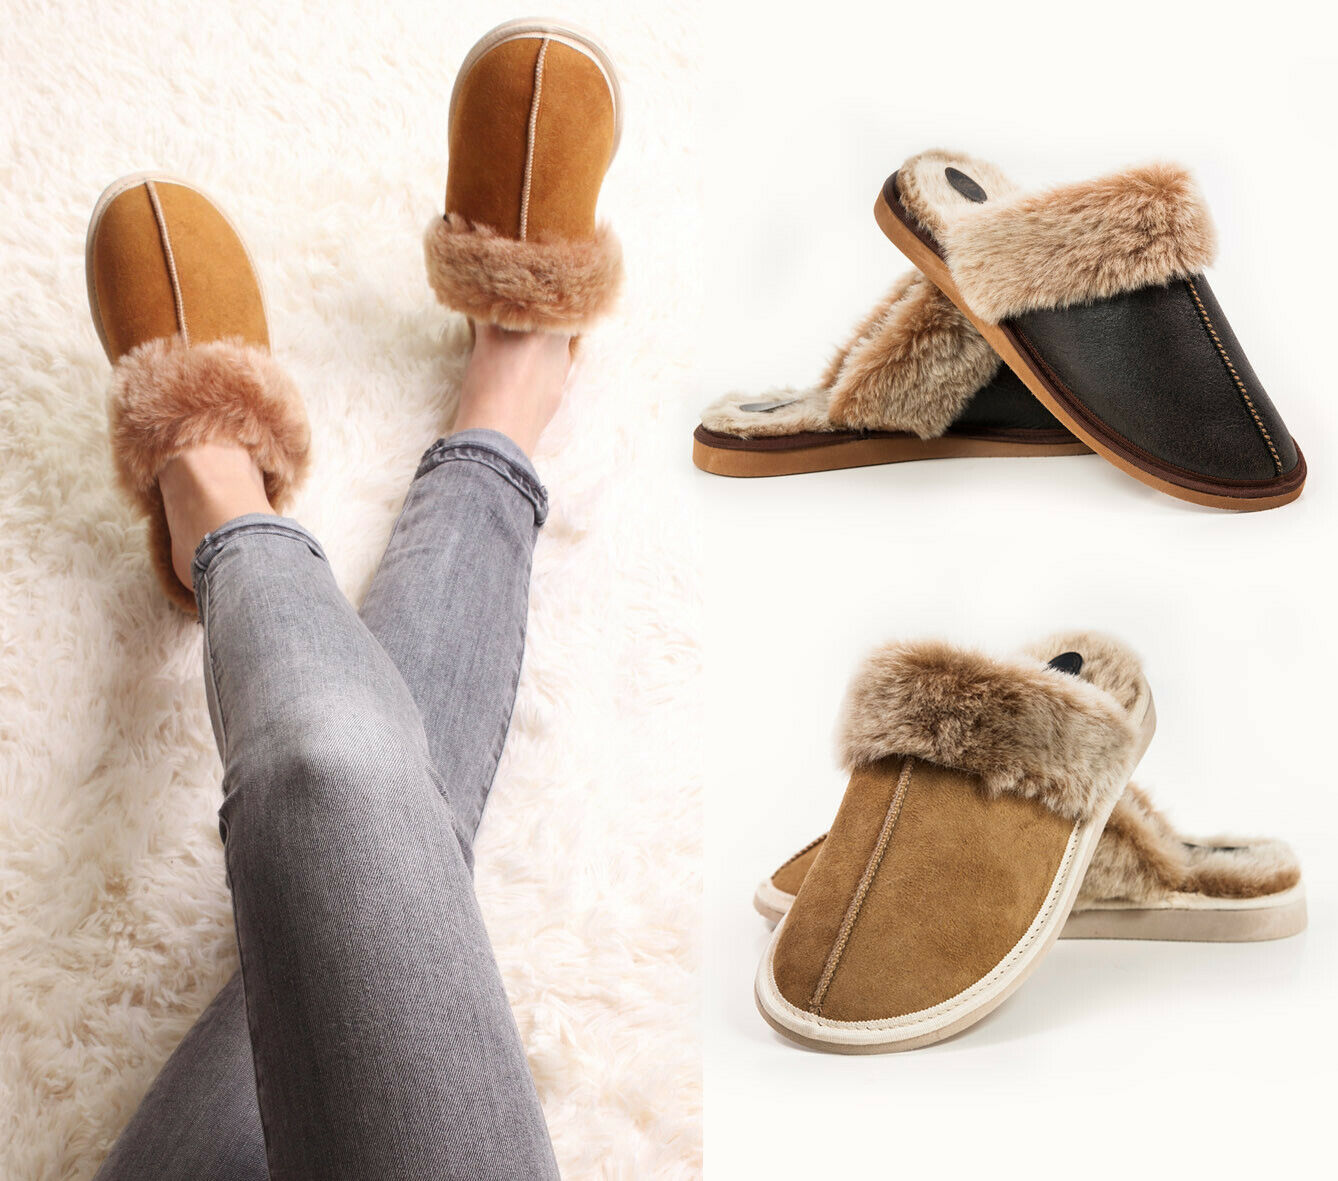 Hand crafted Men's Women's Genuine Sheepskin Mule Slippers, 100% Real Fur Lined